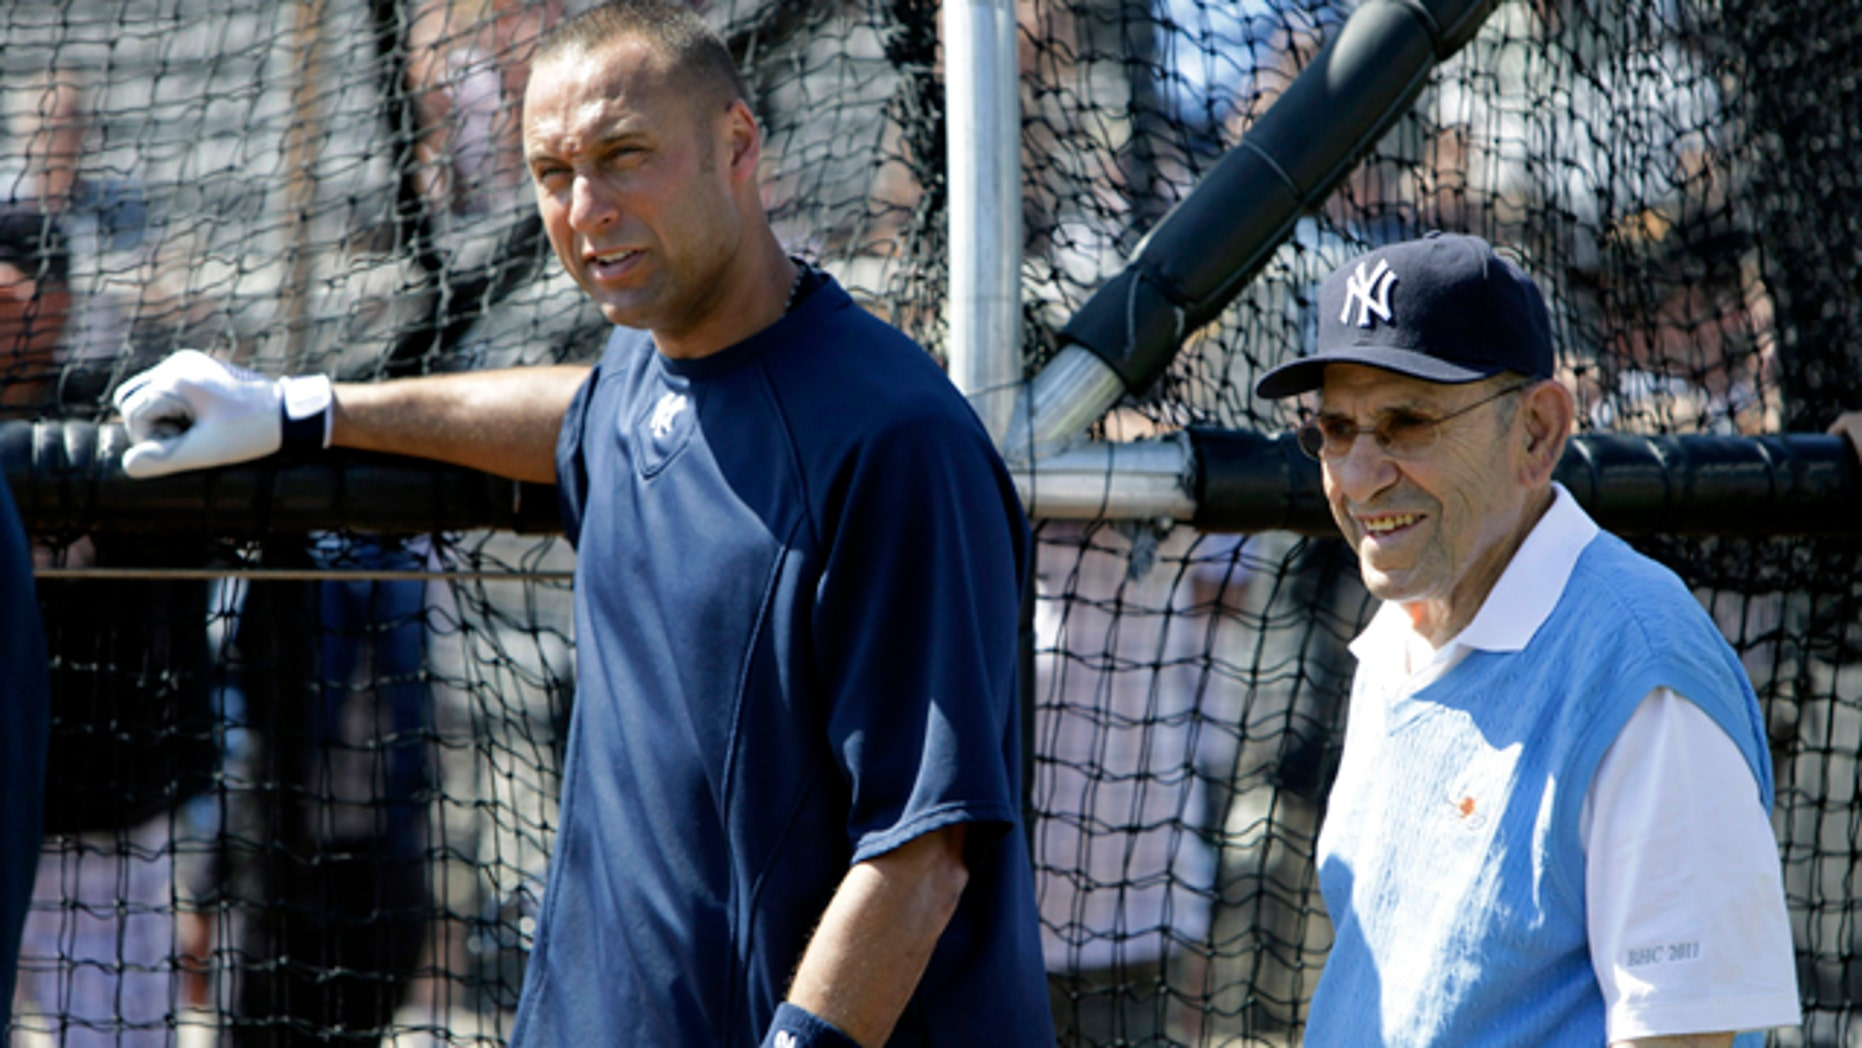 Feb. 23: New York Yankees Hall of Fame catcher Yogi Berra, right, talks with Yankees shortstop Derek Jeter, left, during a baseball spring training workout at Steinbrenner Field in Tampa, Fla.